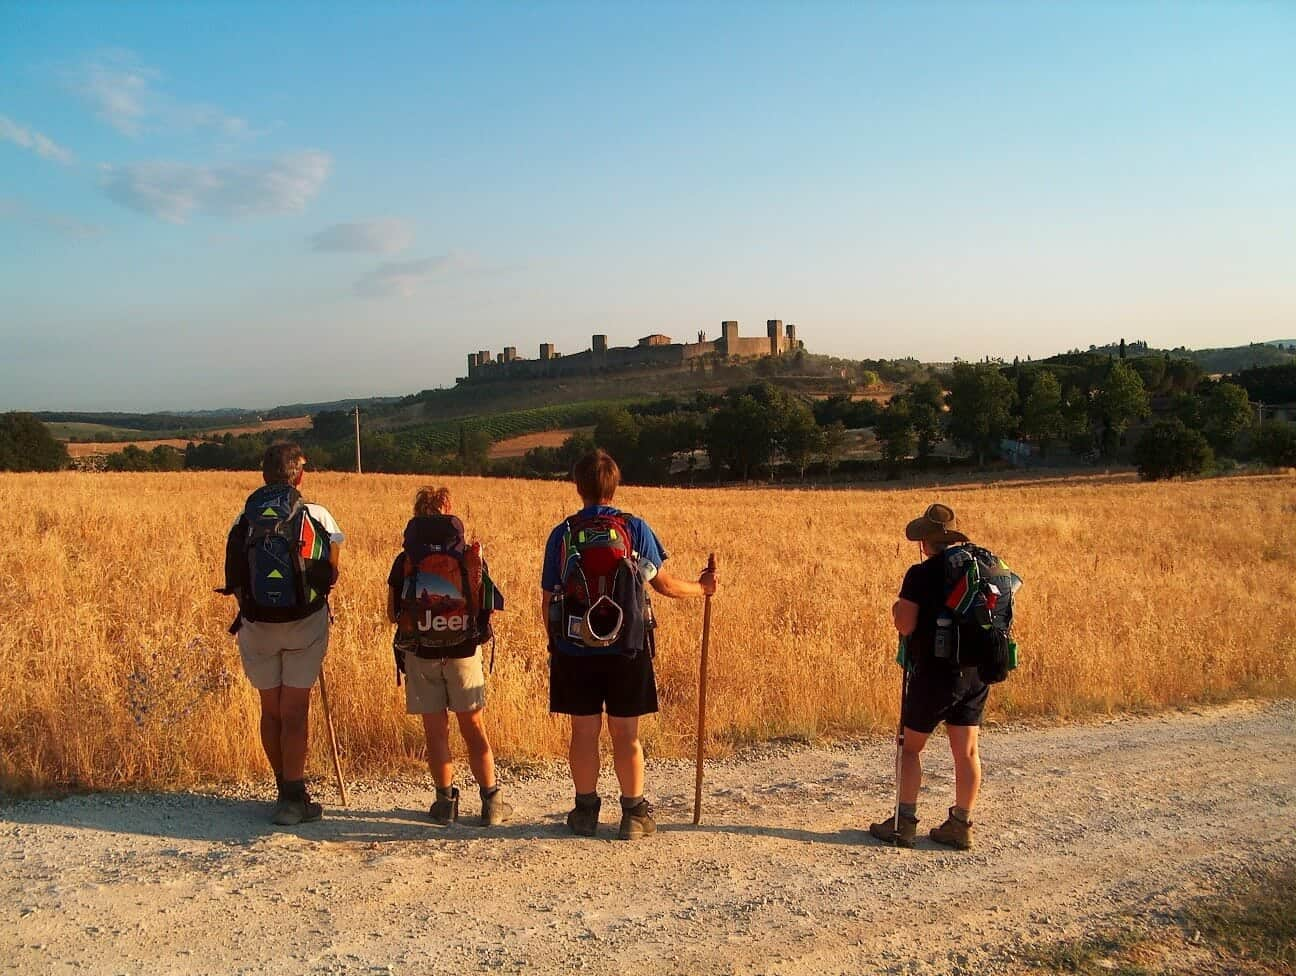 Love the Camino in 2013 with the Heming-Way!